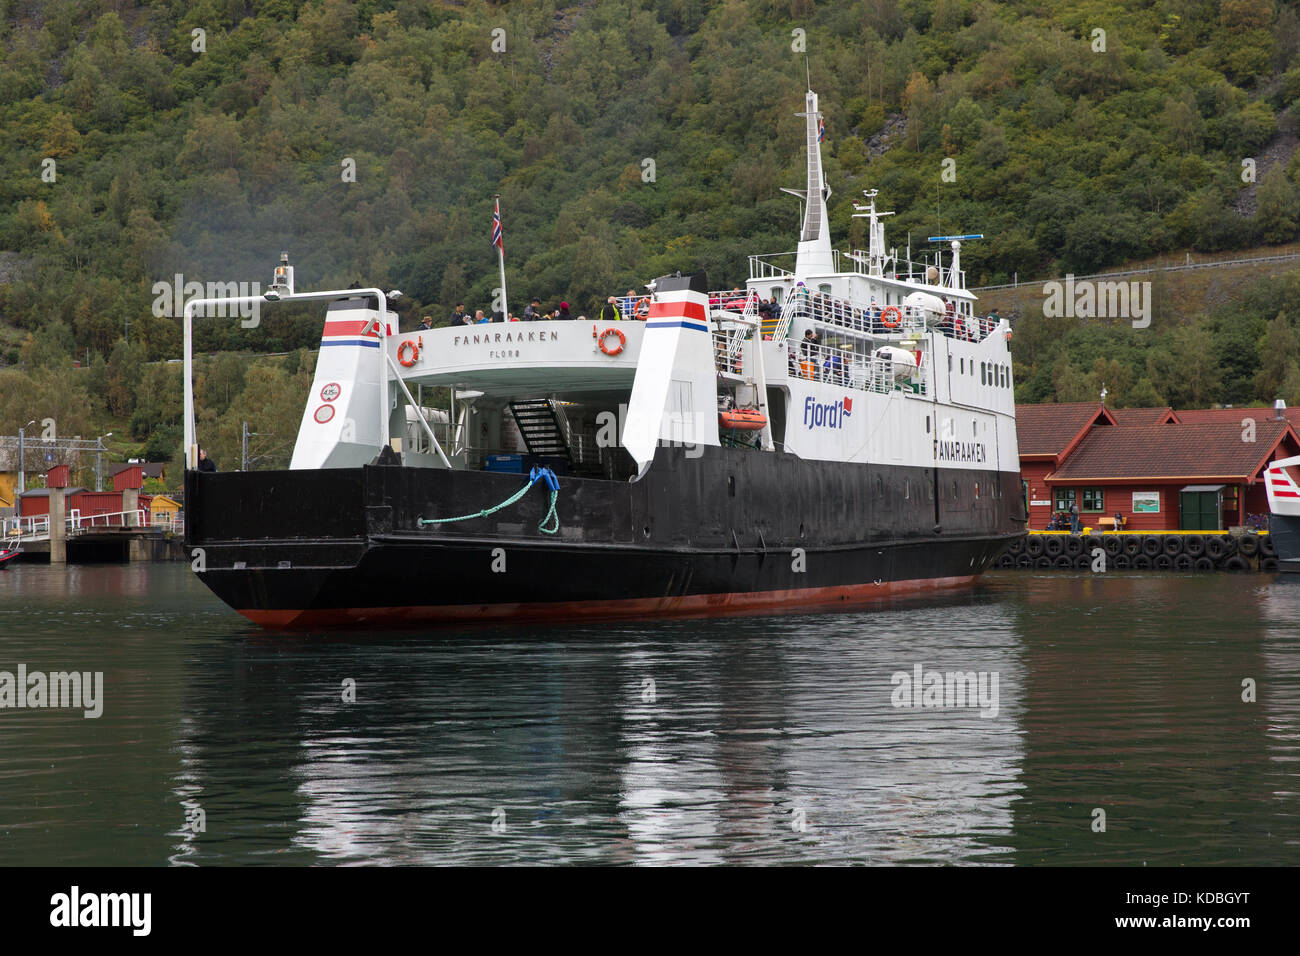 The Fanaraaken, a passenger and RoRo ferry of the Fjord1